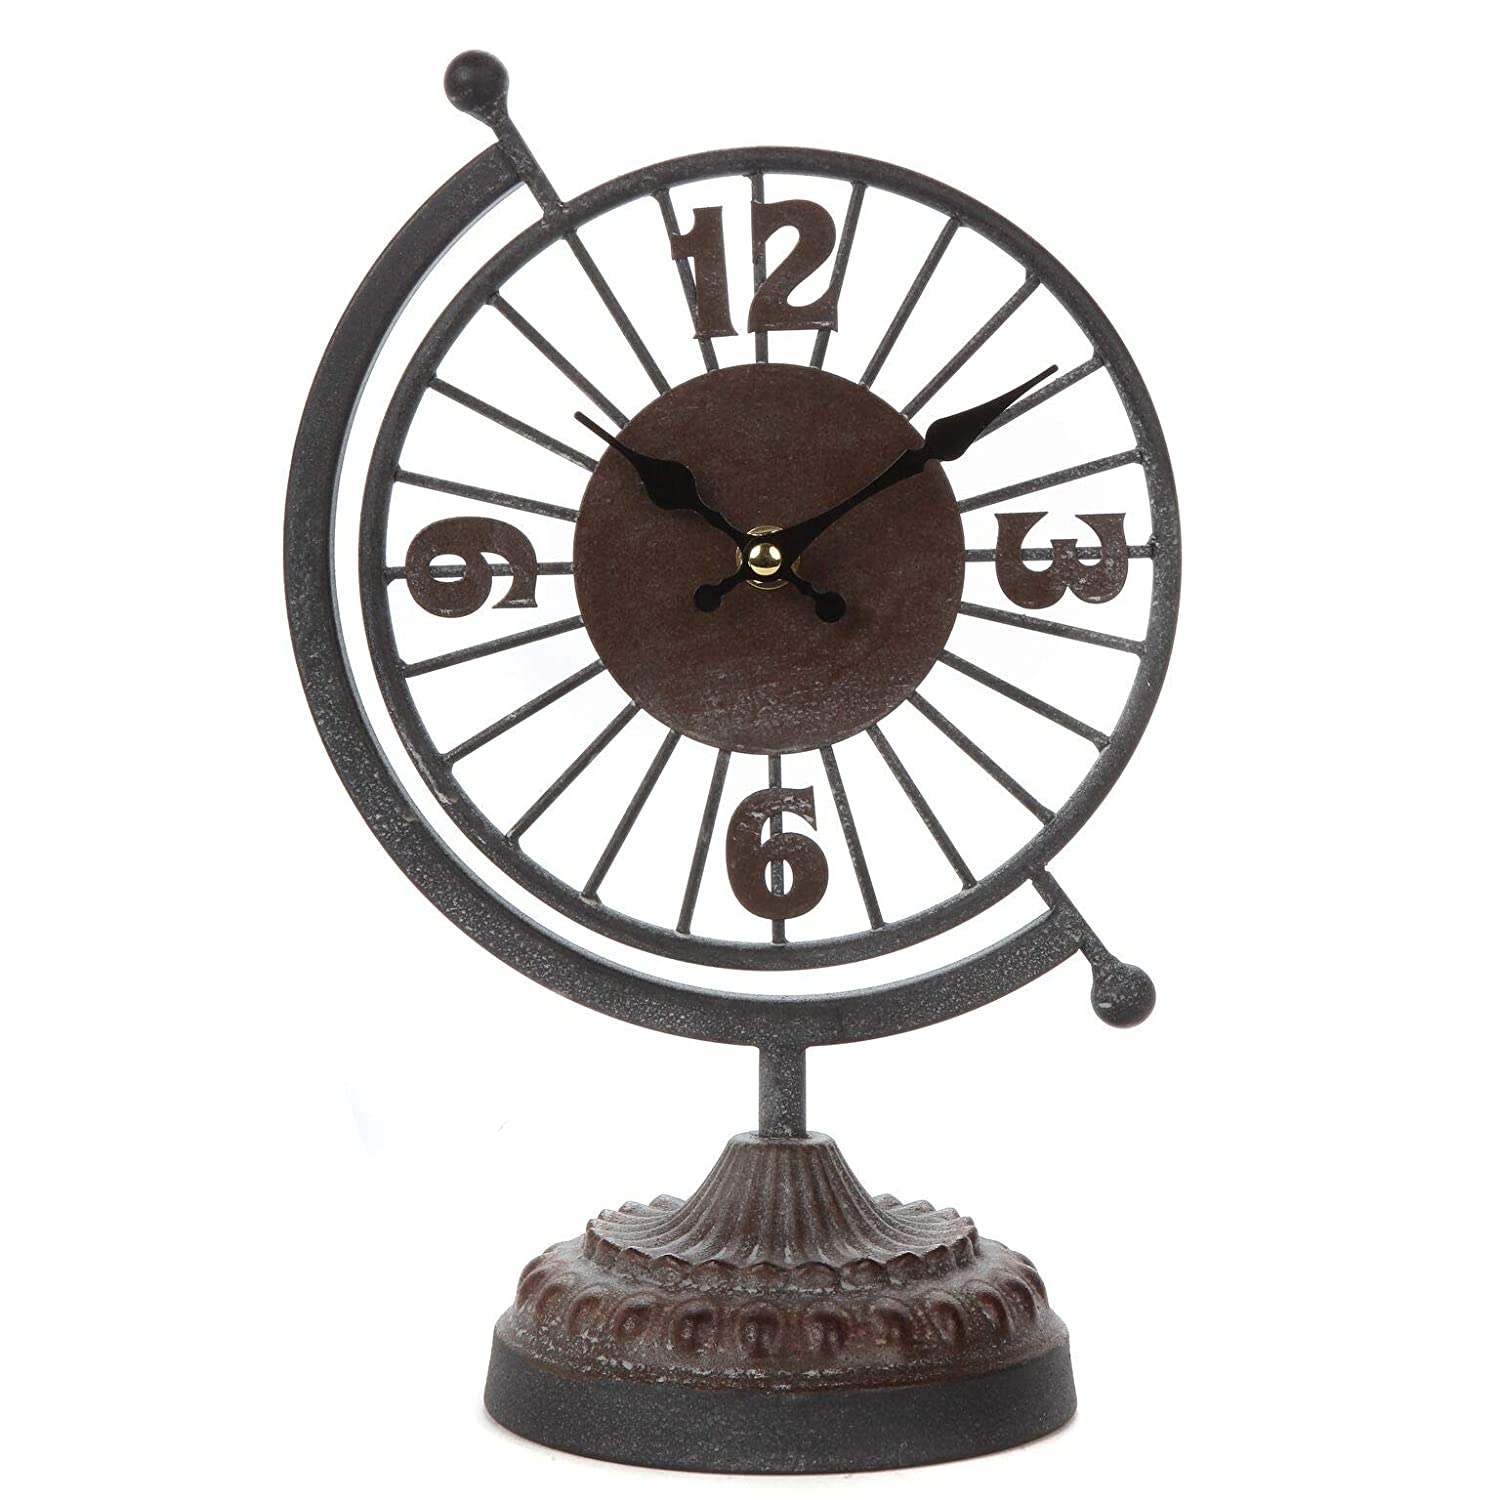 Lily's Home Rustic Desk Tabletop Clock for Bedroom, Quite Movement, Unique Vintage Home Decor with Numbers